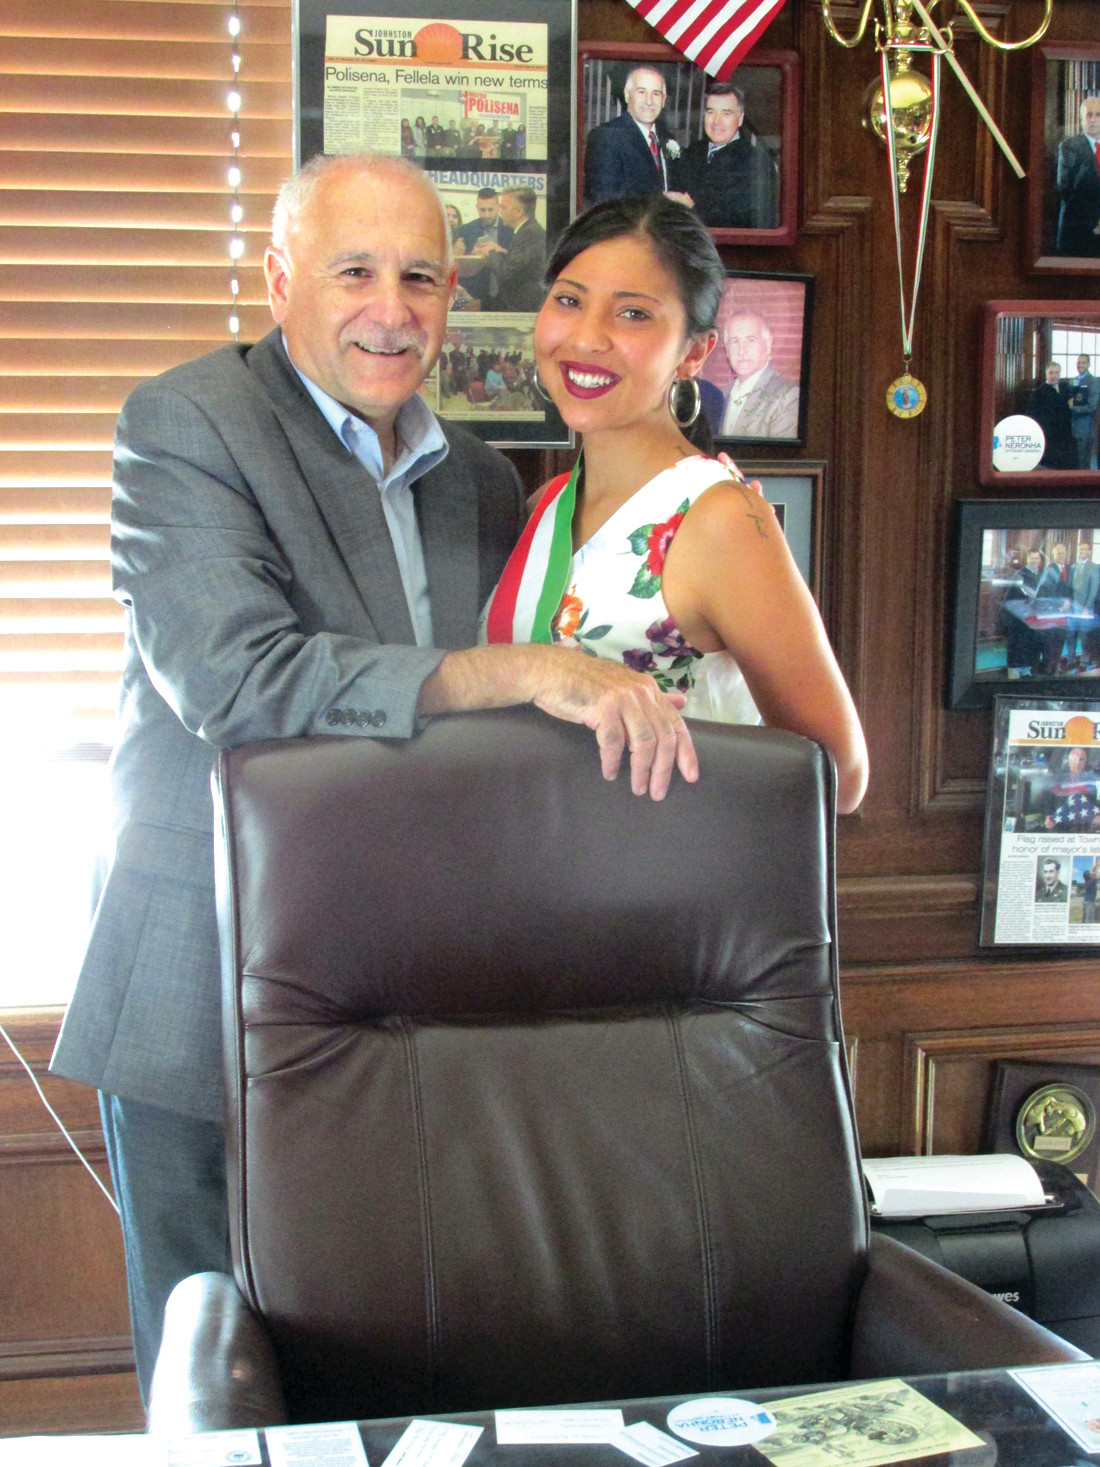 GRAND GUEST: Danida Mansolillo, the Vice Mayor of Panni, Foggia in Italy, is all smiles while joining Johnston Mayor Joseph Polisena at his desk during Monday's interesting Italian international meeting inside town hall.